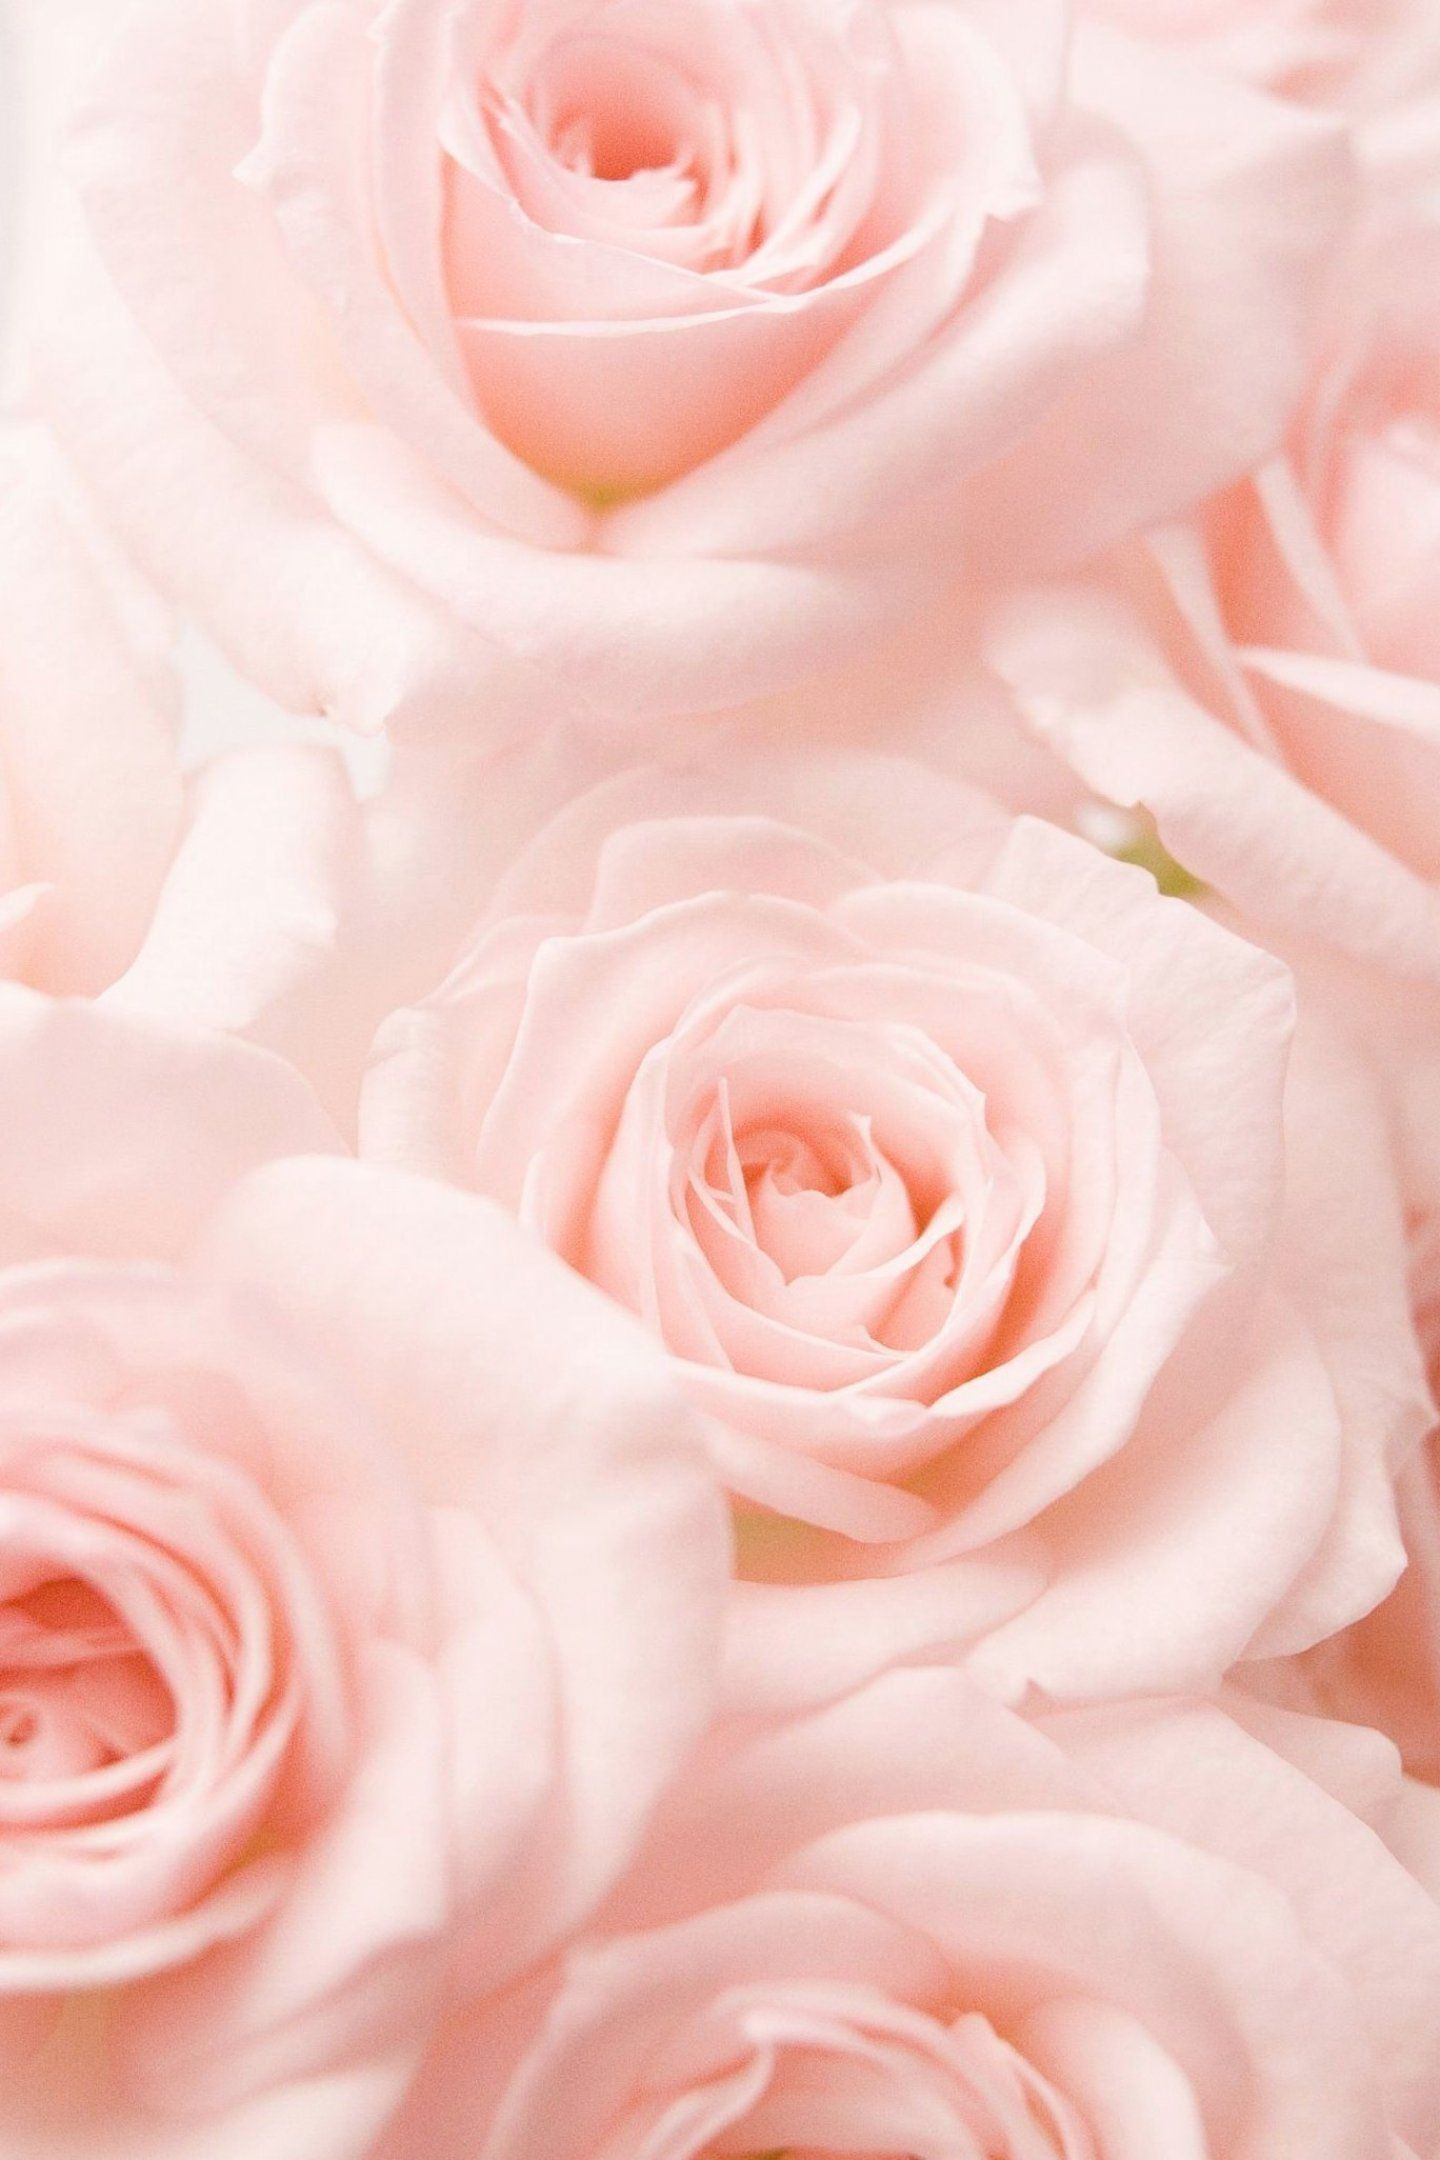 Pin By Amanda Leal On Mummy In 2020 Pink Roses Background Rose Color Meanings Flower Aesthetic